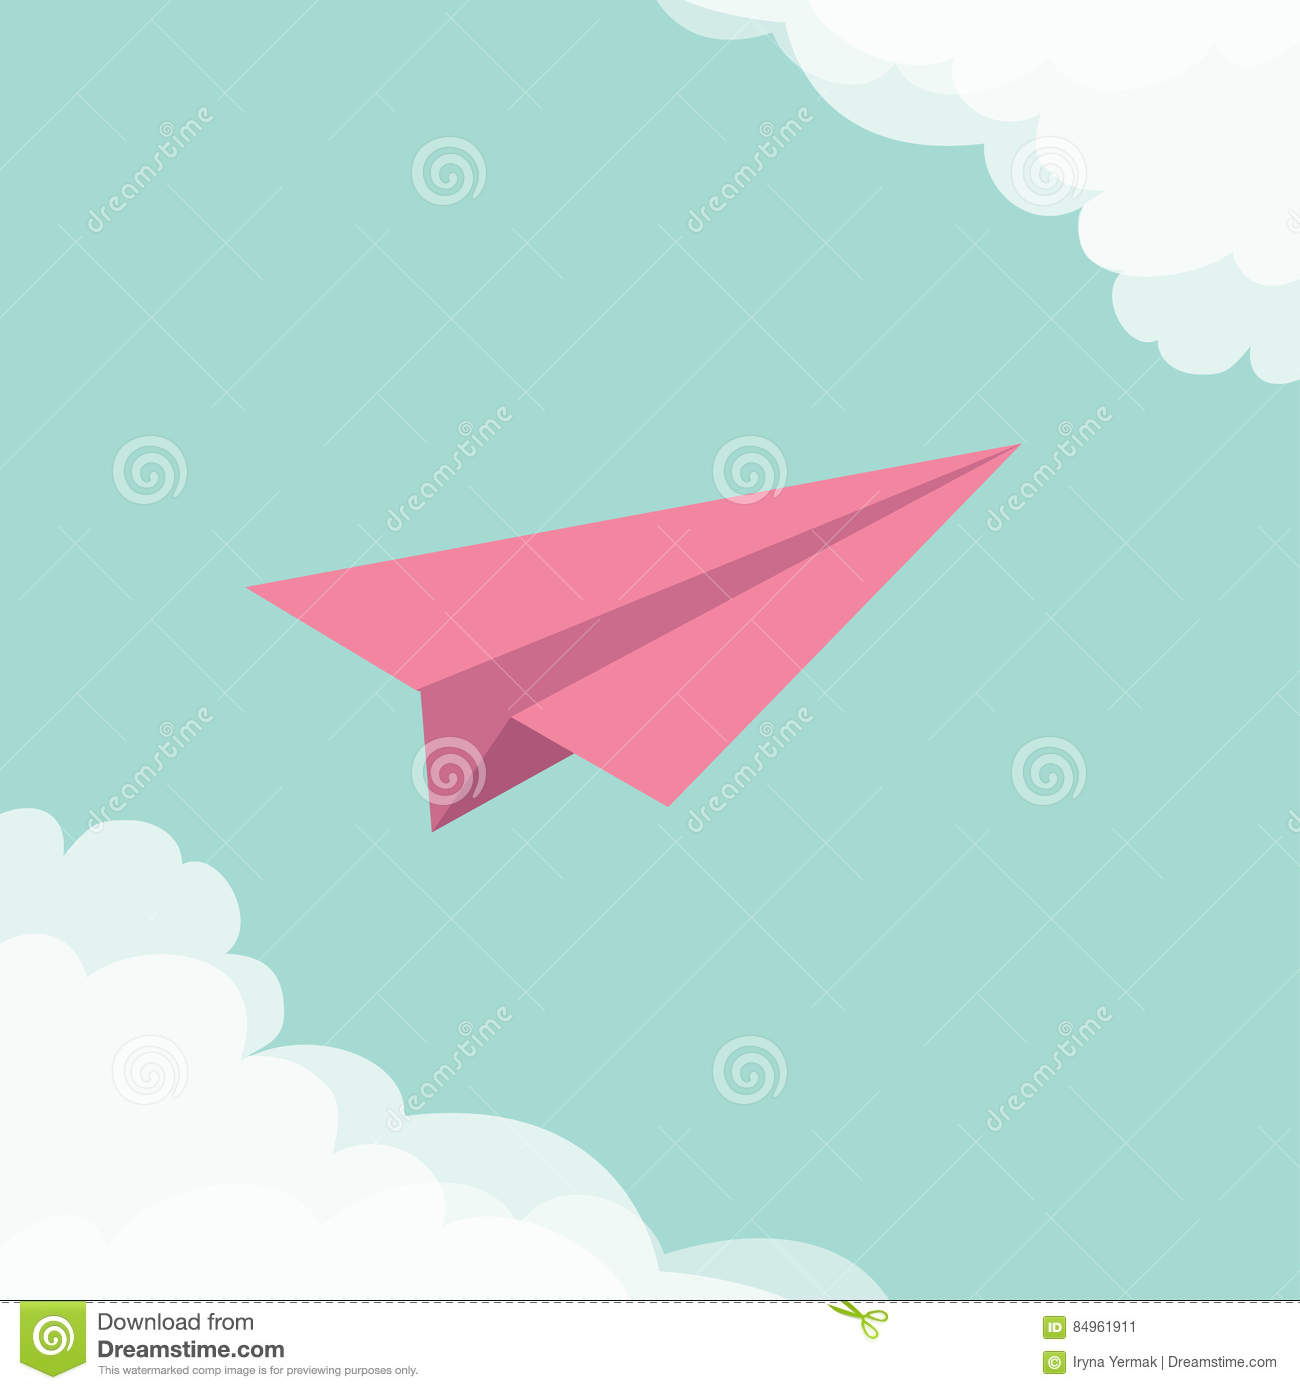 physics coursework paper helicopter results Paper helicopter experiment gcse physics resultspdf free download here optimising paper helicopter flights  paper helicopter experiment gcse physics results keywords: paper helicopter experiment gcse physics results created date: 11/3/2014 5:00:39 pm.